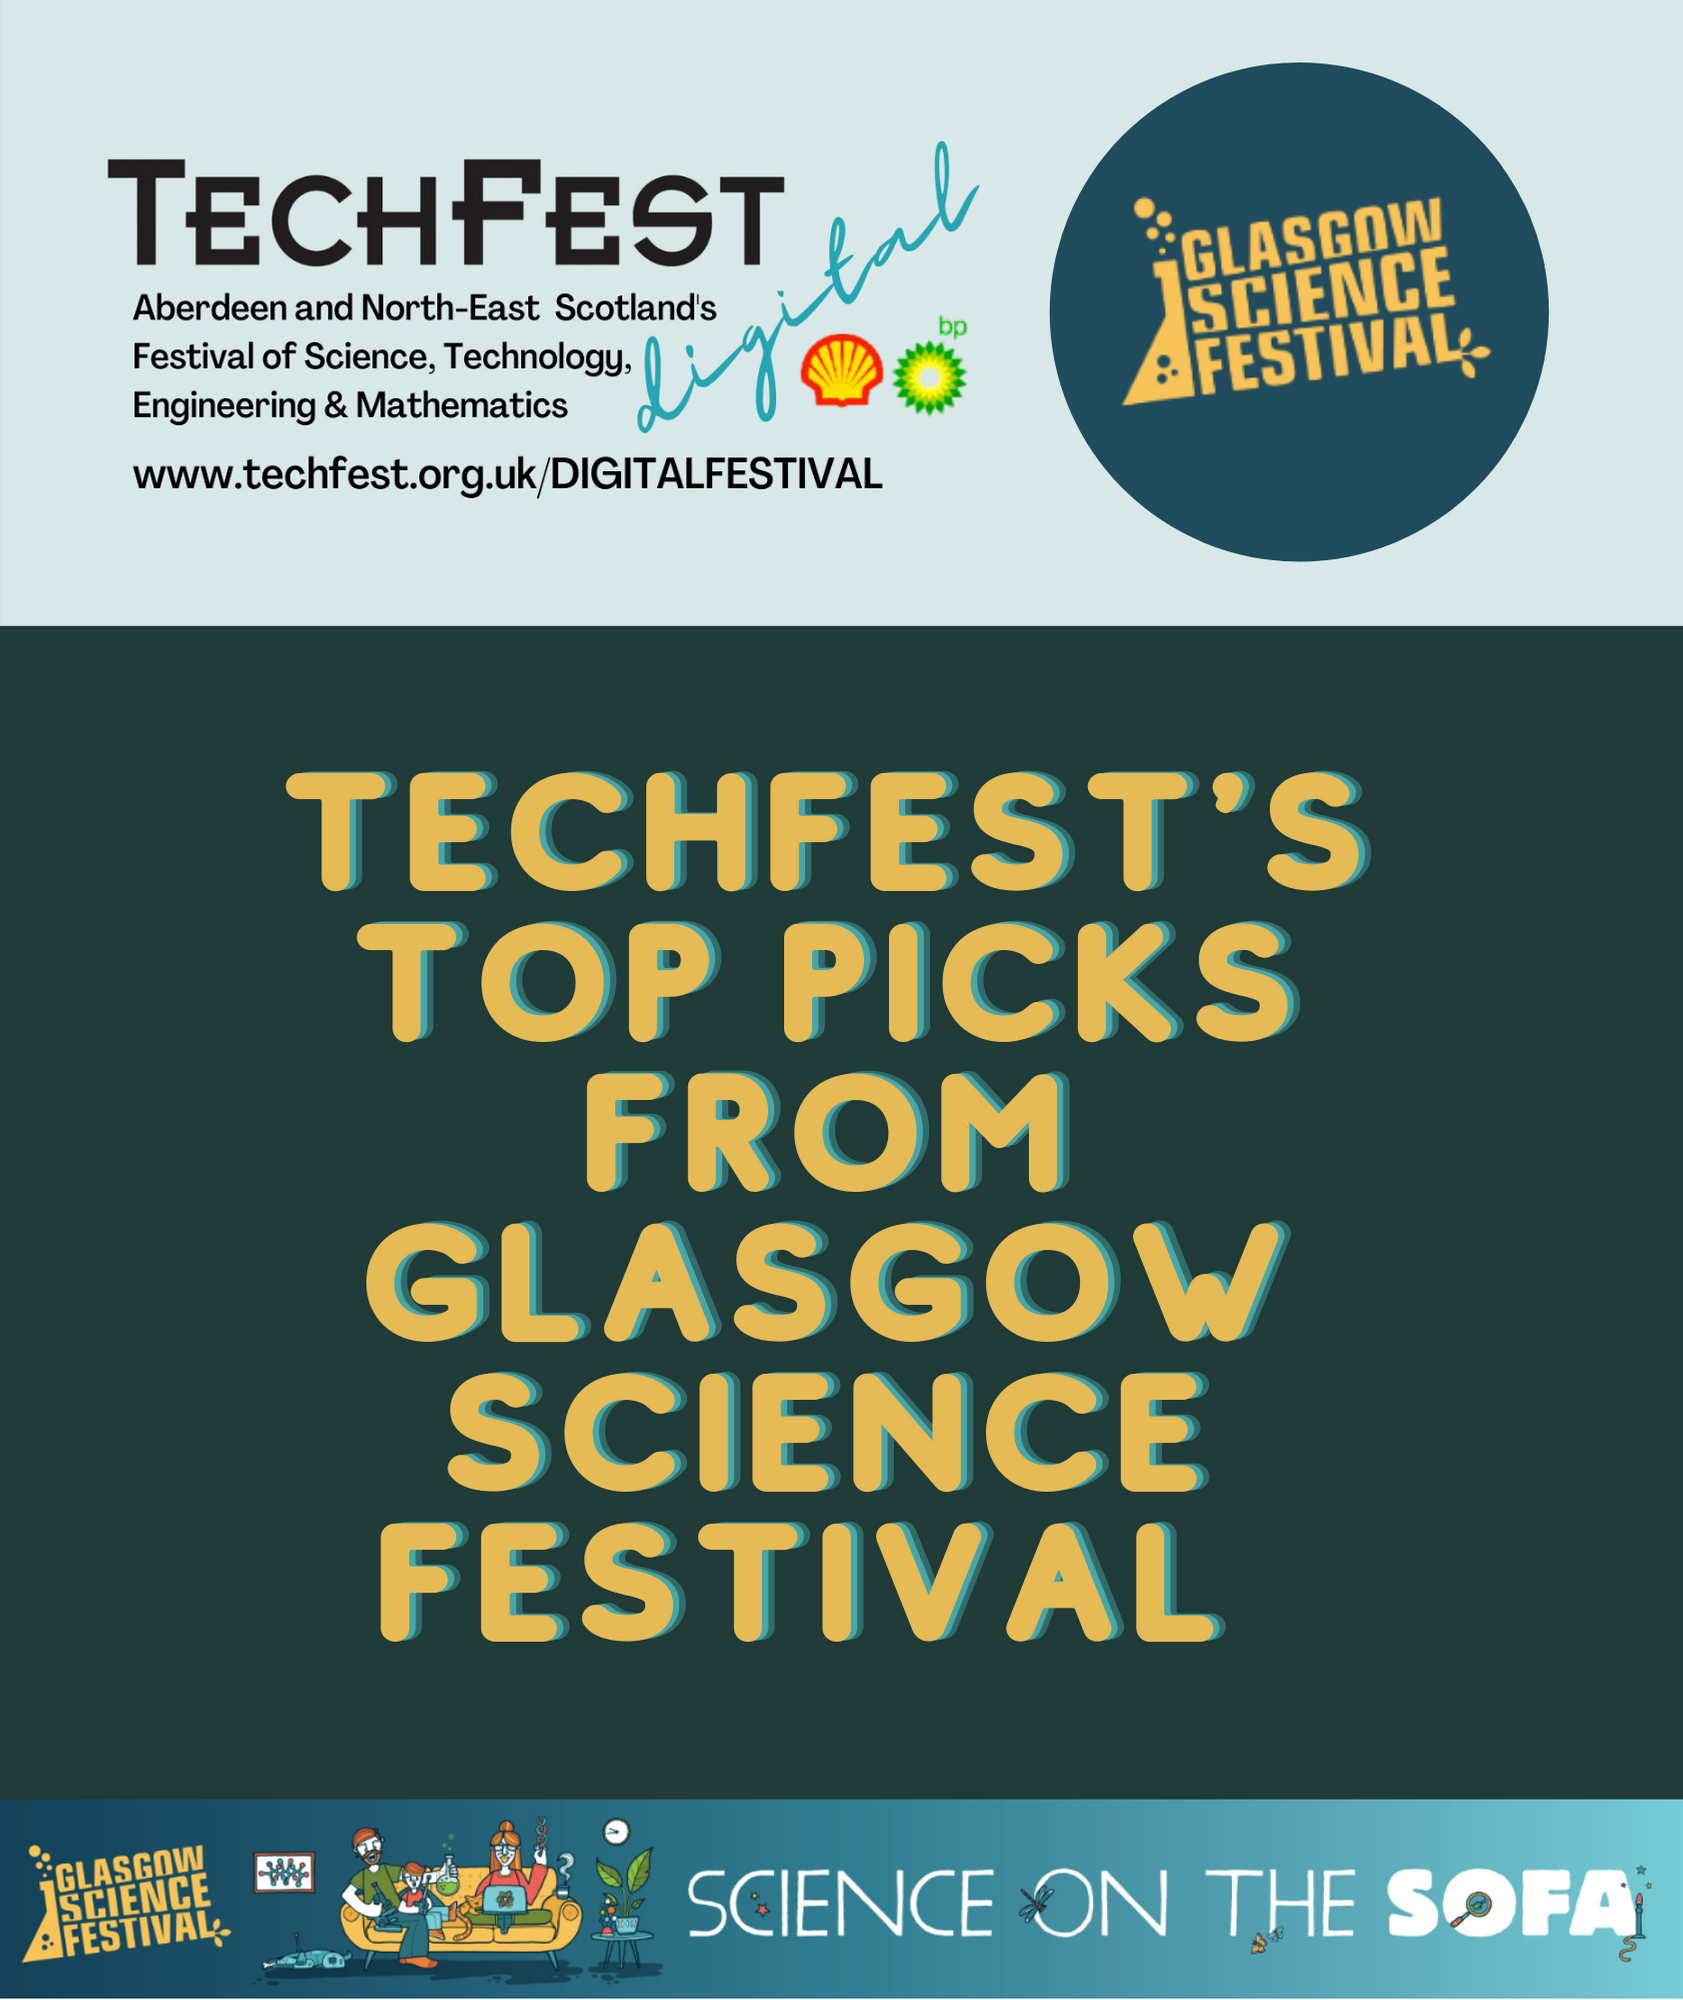 Copy of Glasgow Science Festival Top Picks